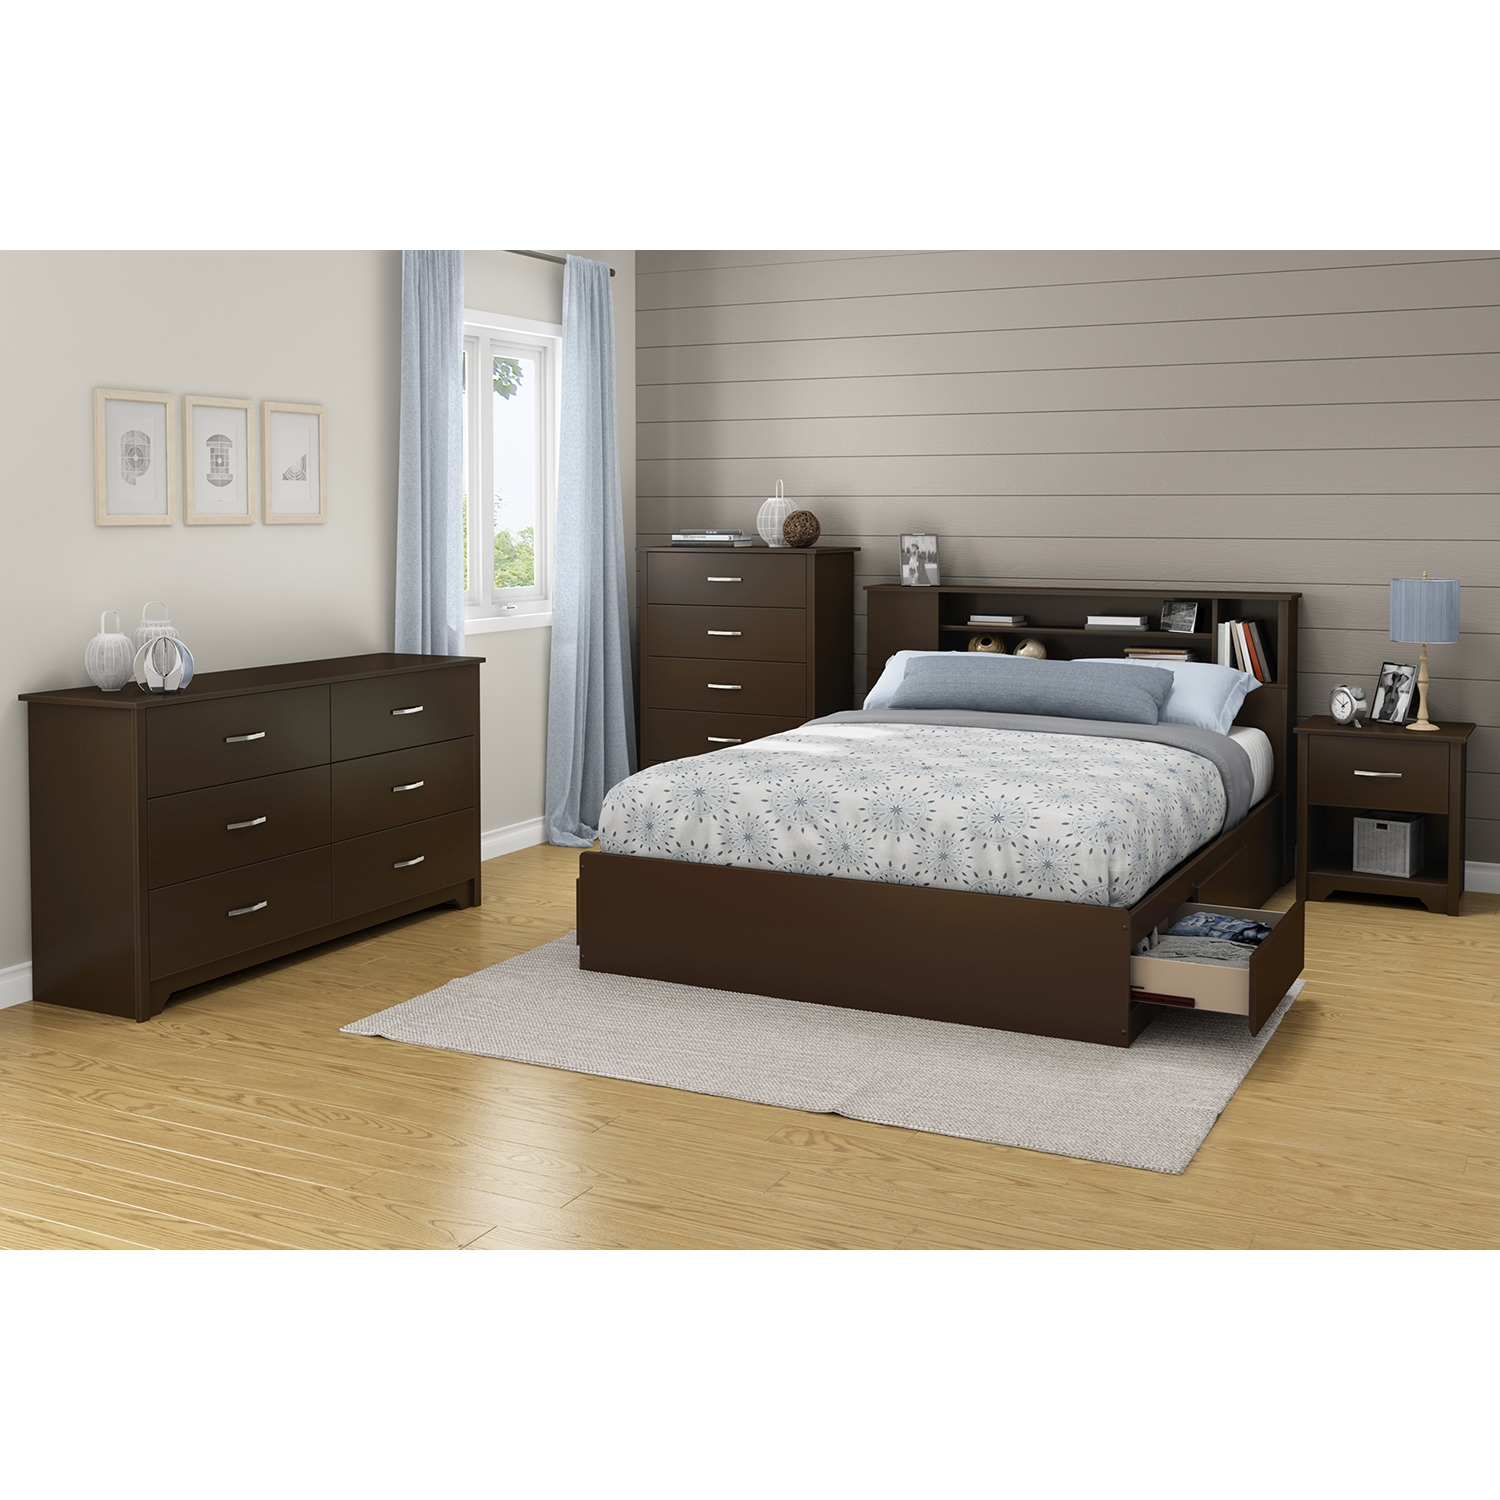 Fusion Queen Mates Bed - 2 Drawers, Chocolate - SS-9006B1